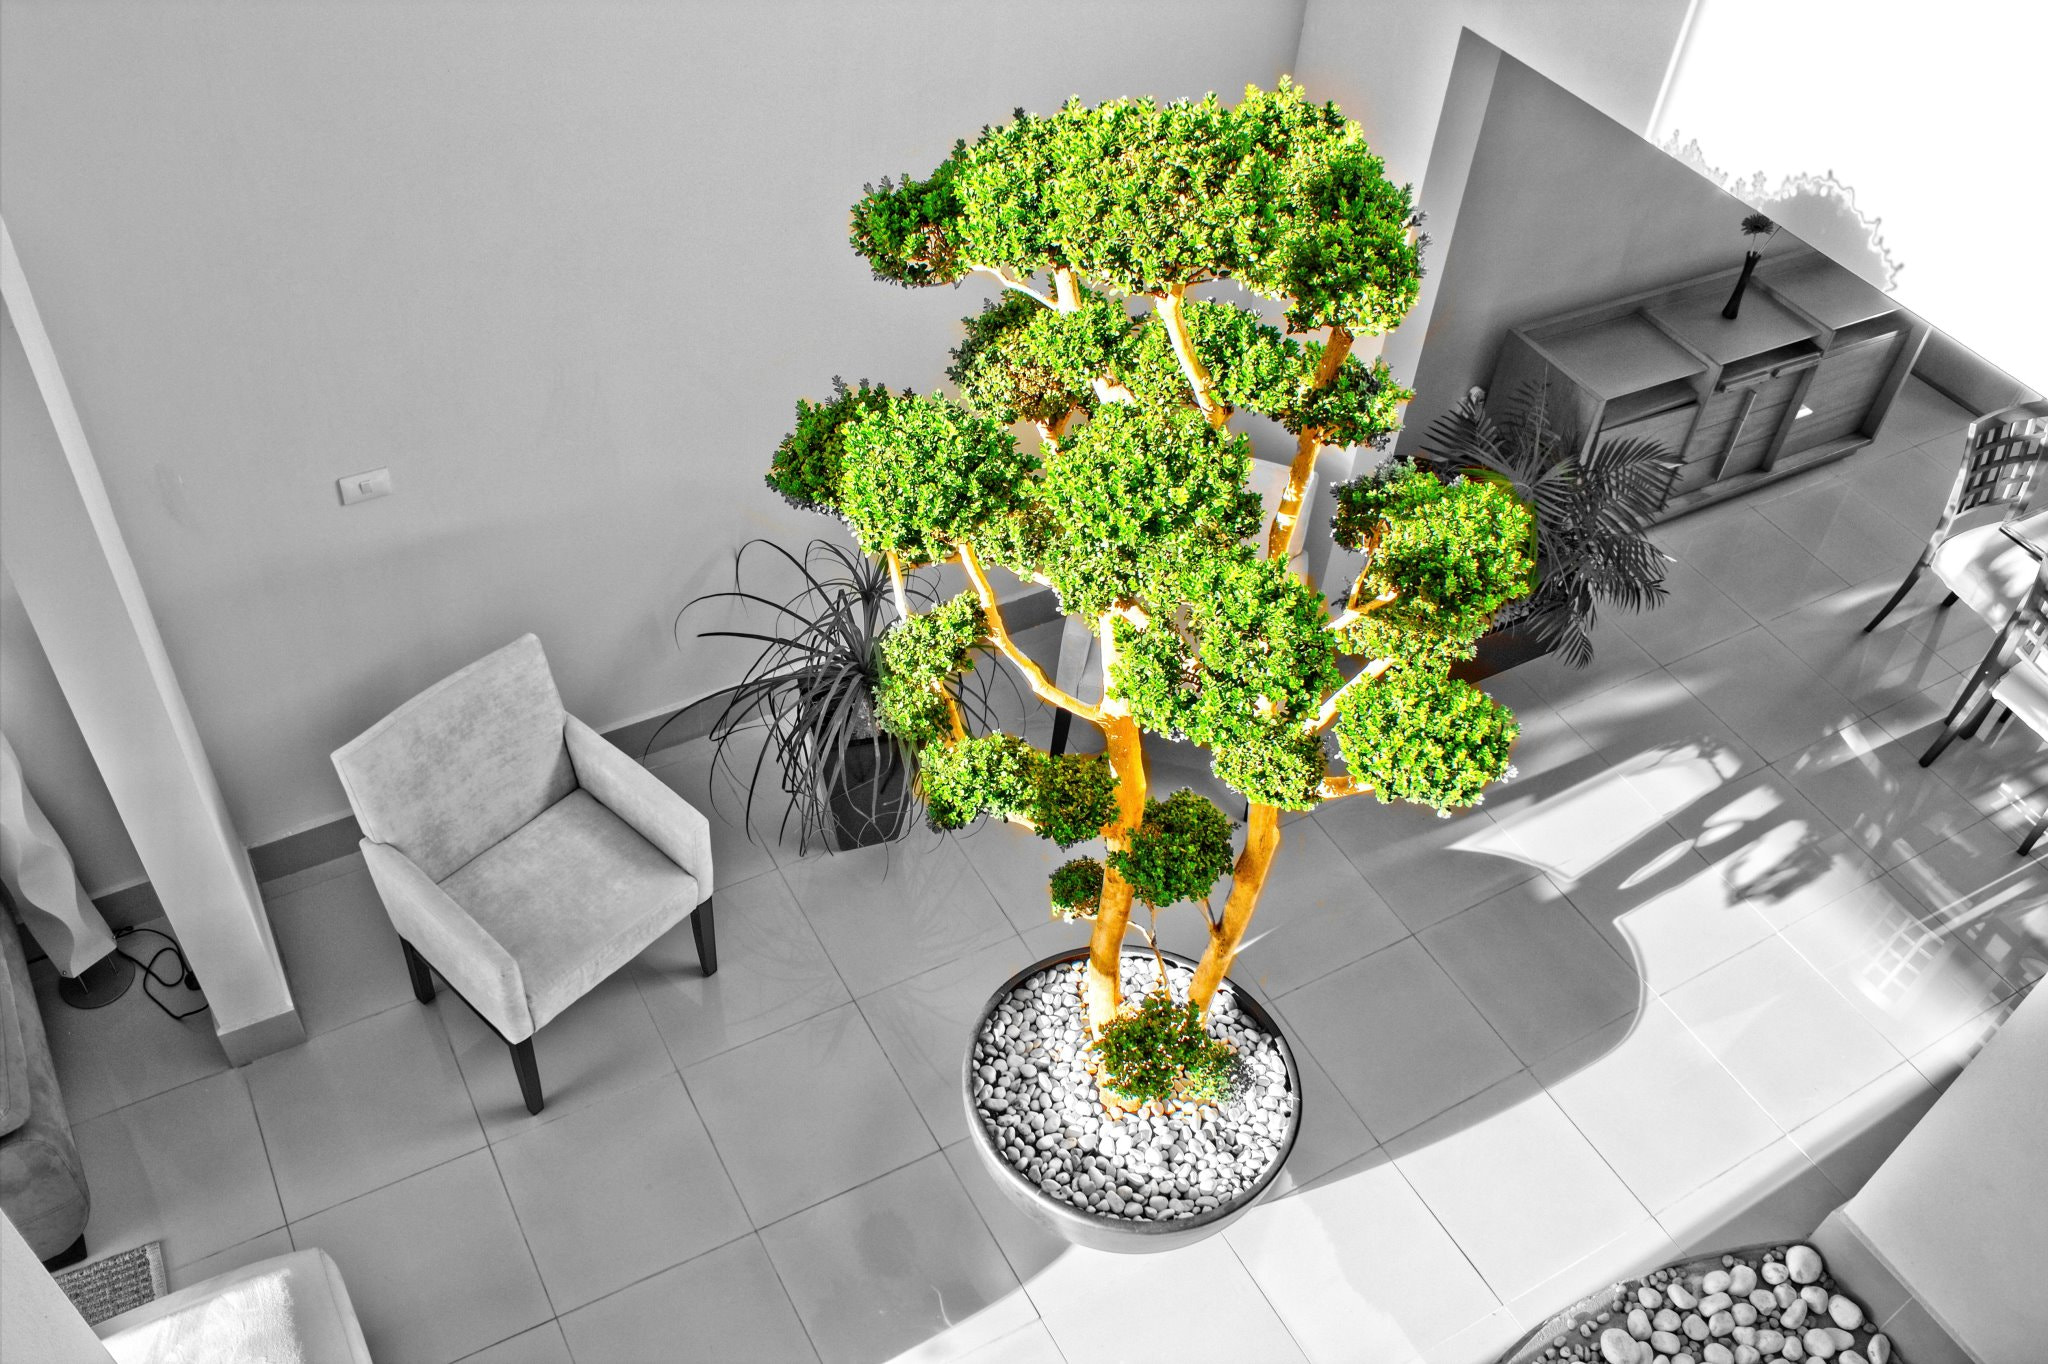 Photograph Tree indoor by Carlo Jimenez on 500px